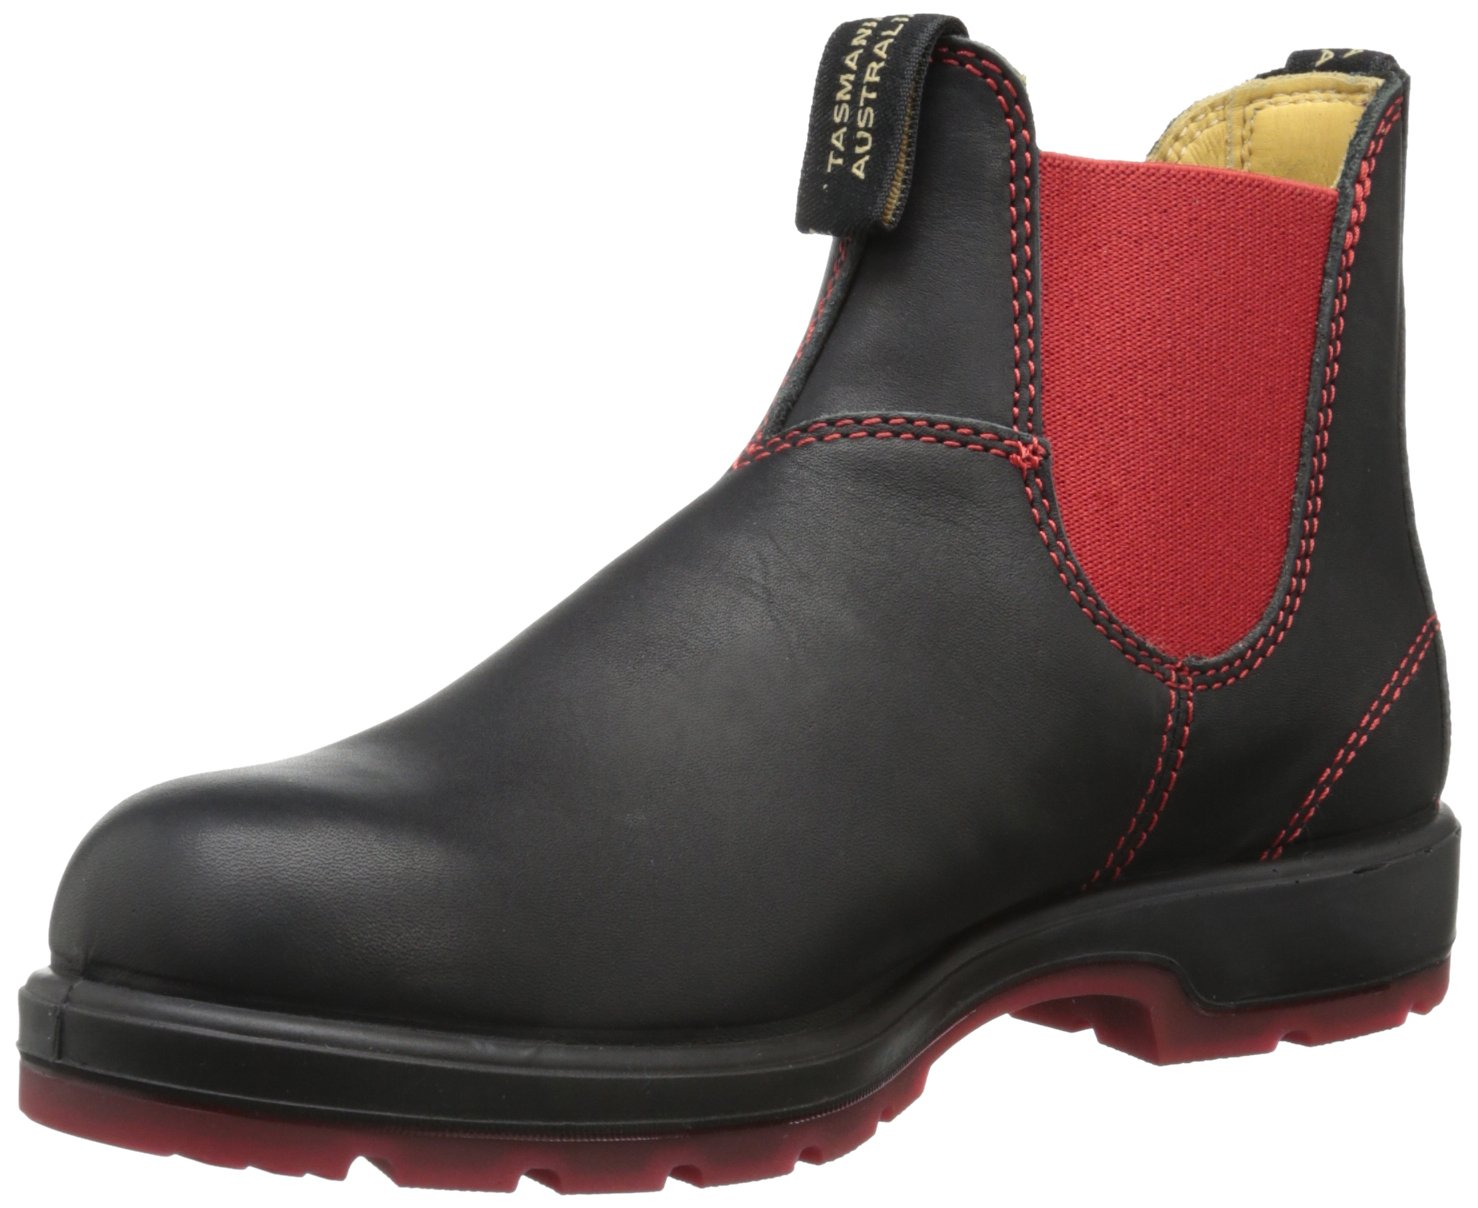 Blundstone M Men's BL1316 Winter Boot B00BXLTEFC 9.5 UK/10.5 M US|Black/Red